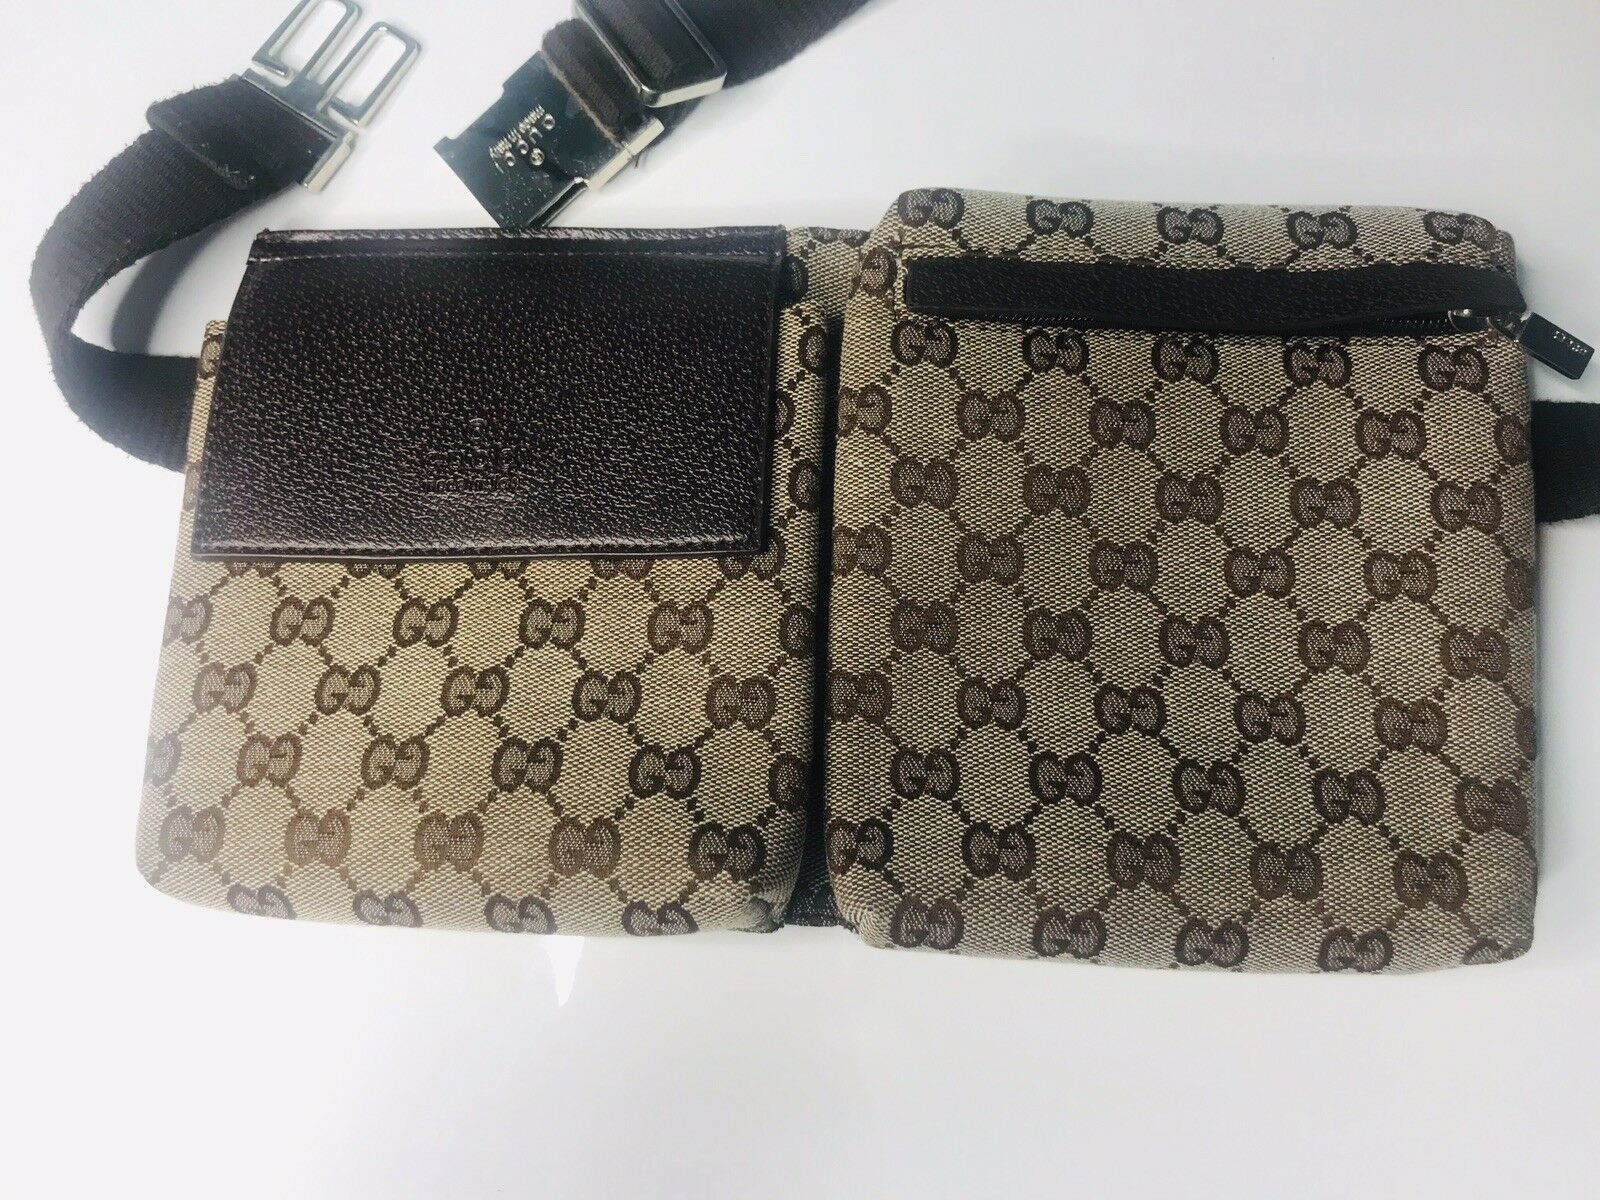 d0bd6820b95d #FORSALE Gucci Waist Pouch Bumbag Belt Bag Fanny Pack Brown Monogram Canvas  - $182